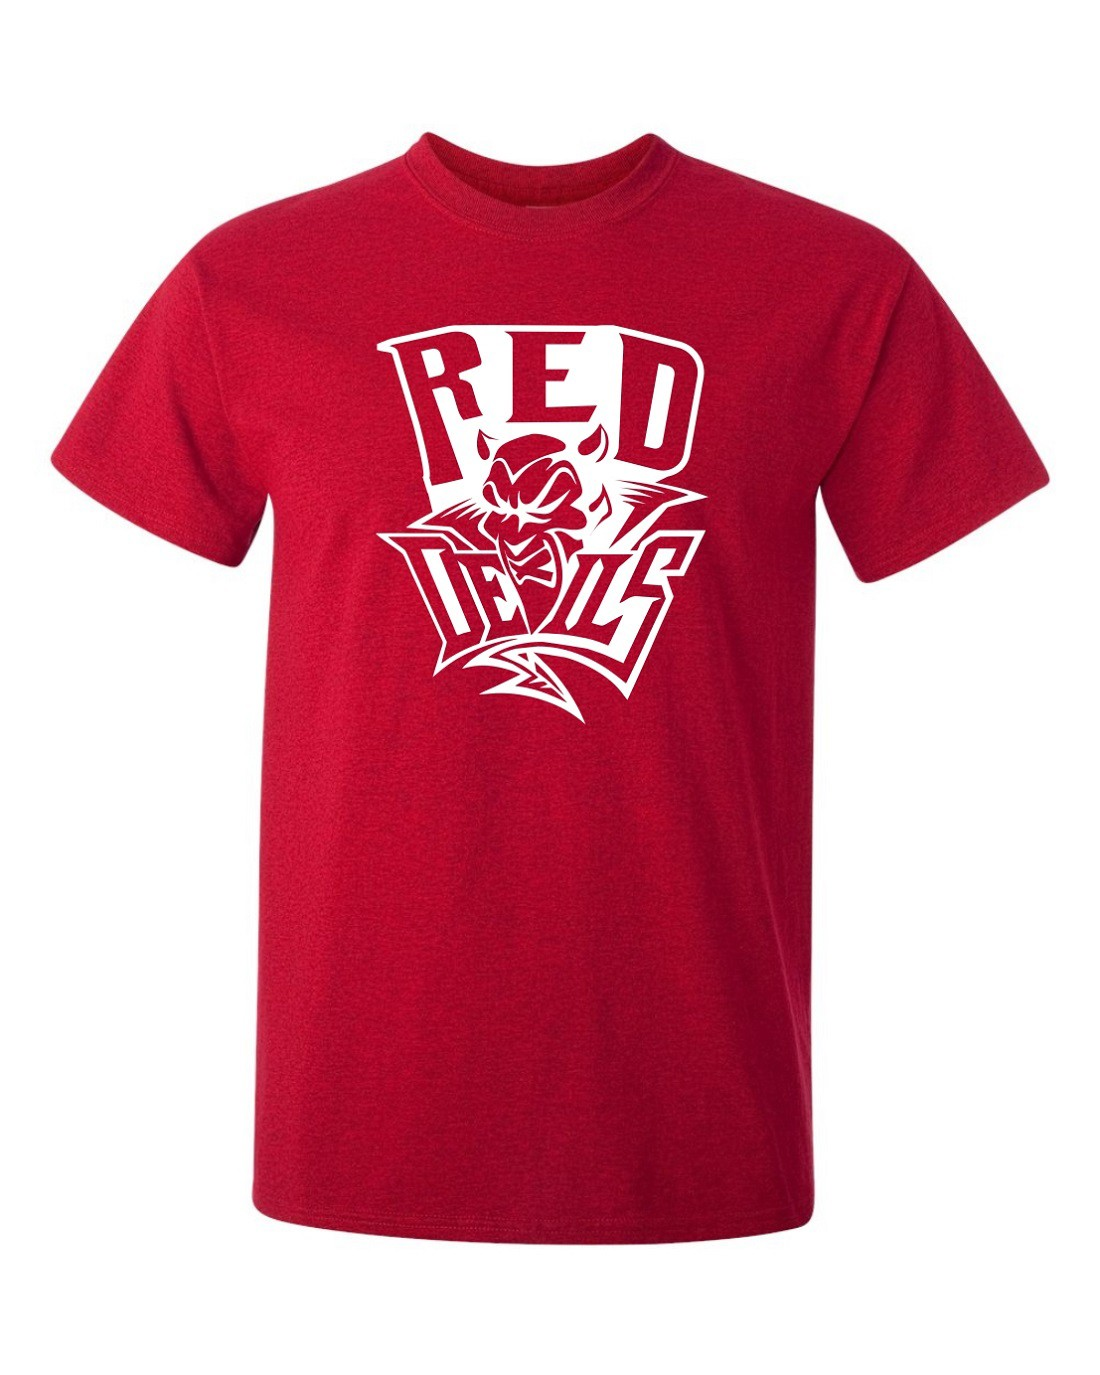 VVS Red Devils 100% Cotton T-Shirts